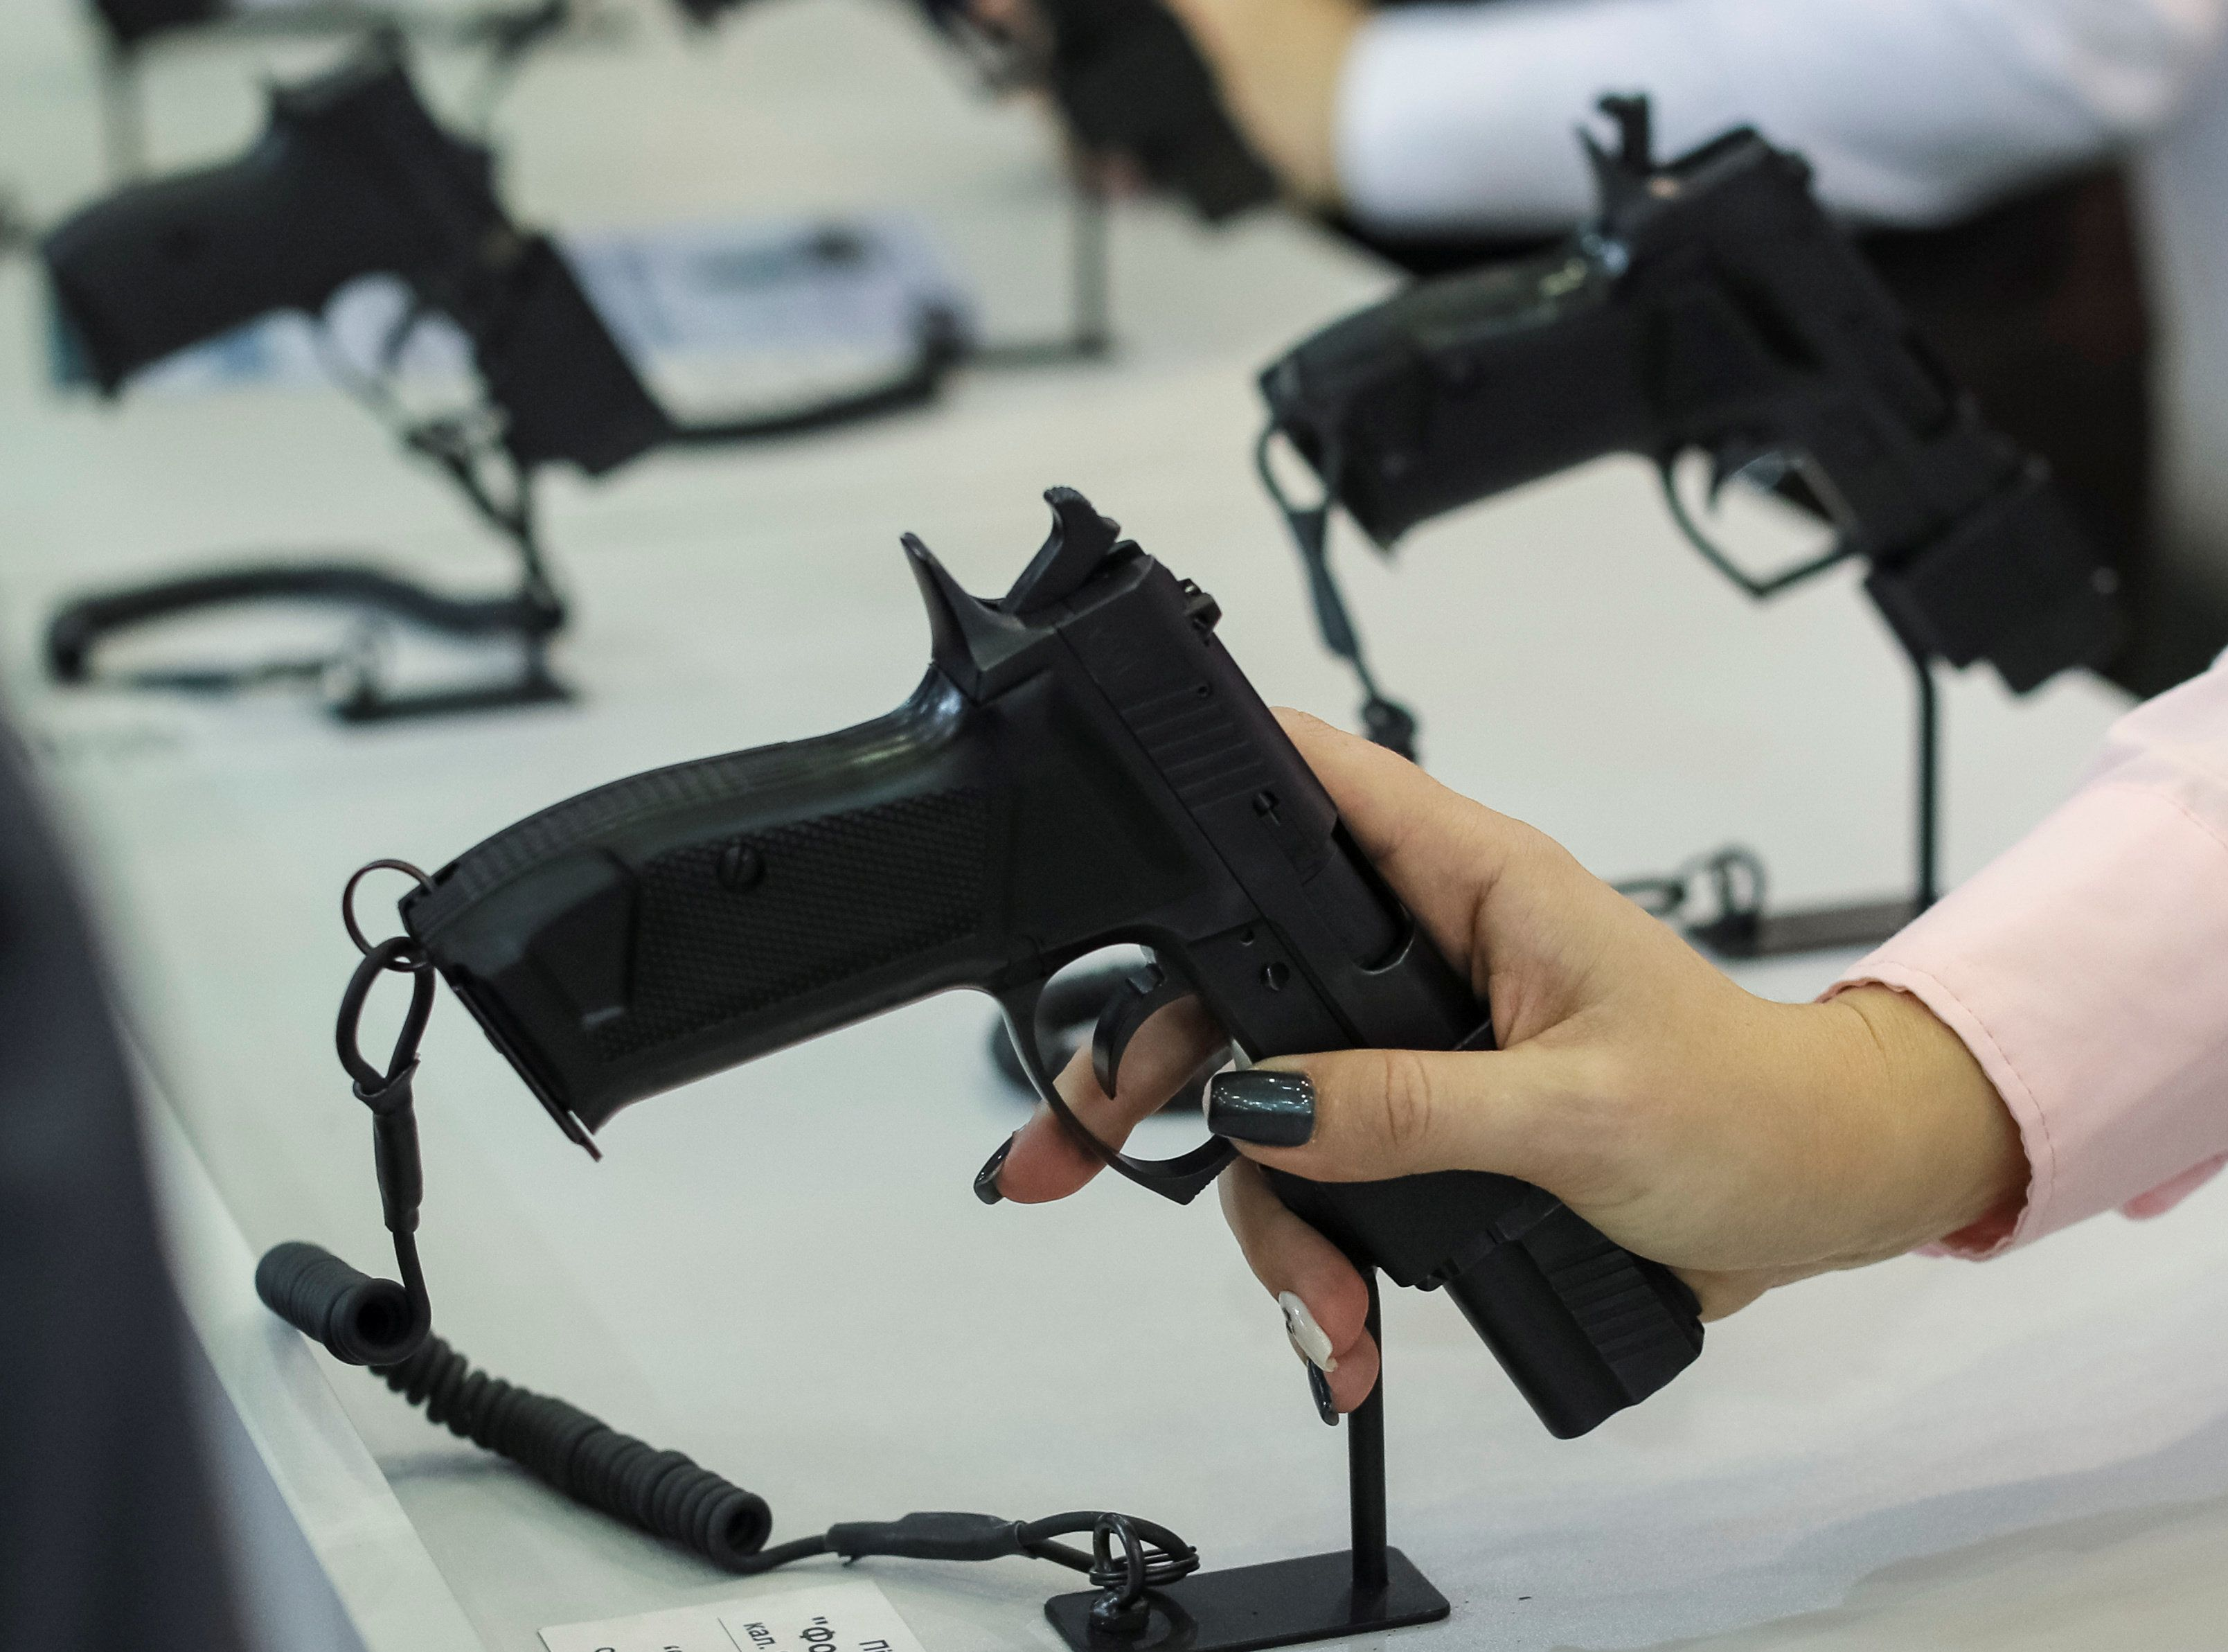 A new study finds there were declines in gun suicides in Connecticut and Indiana in the years following the states' impl